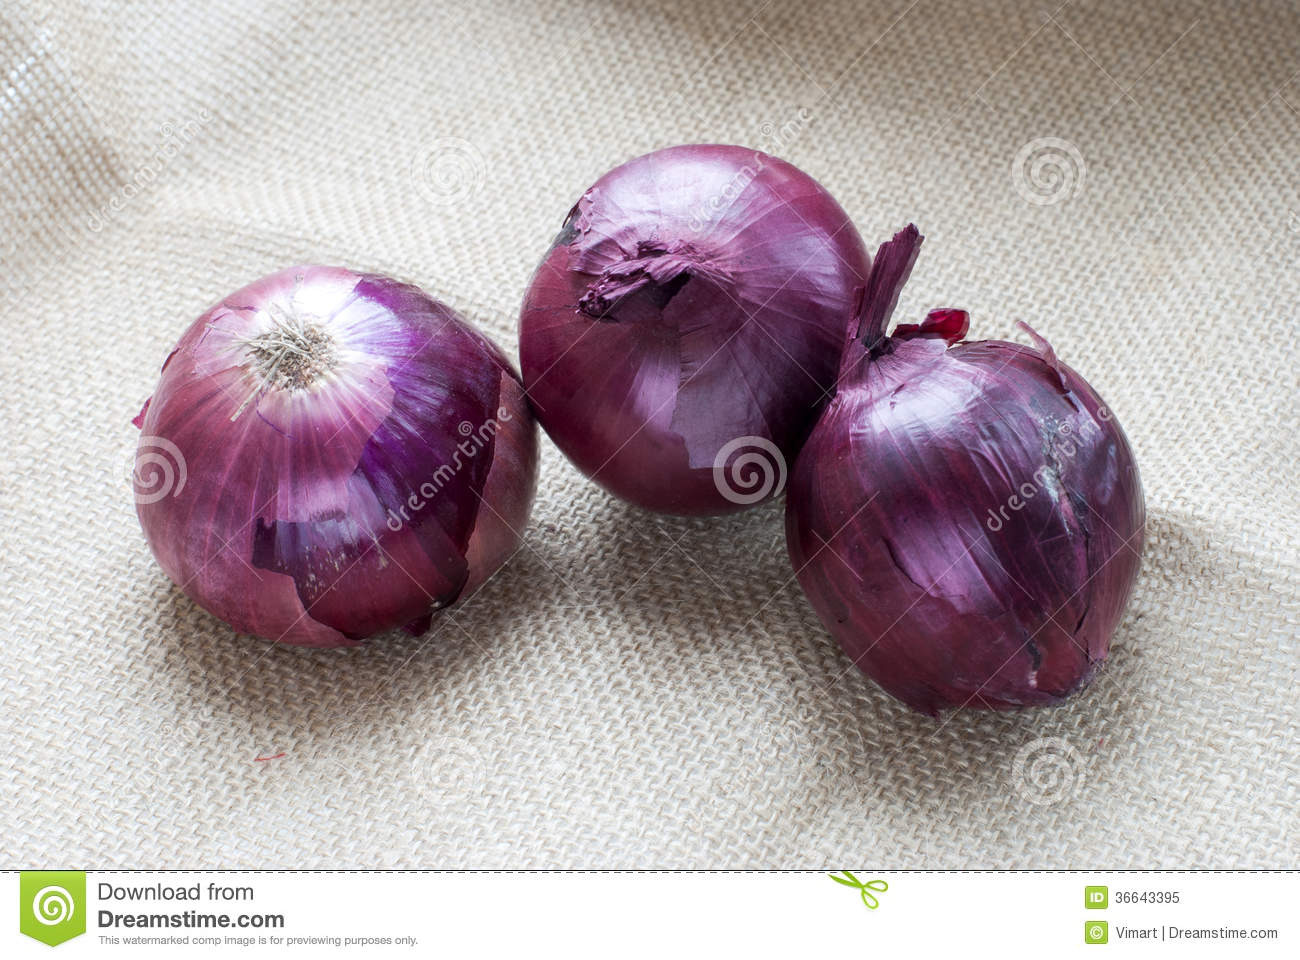 Red Onion Royalty Free Stock Photo - Image: 36643395